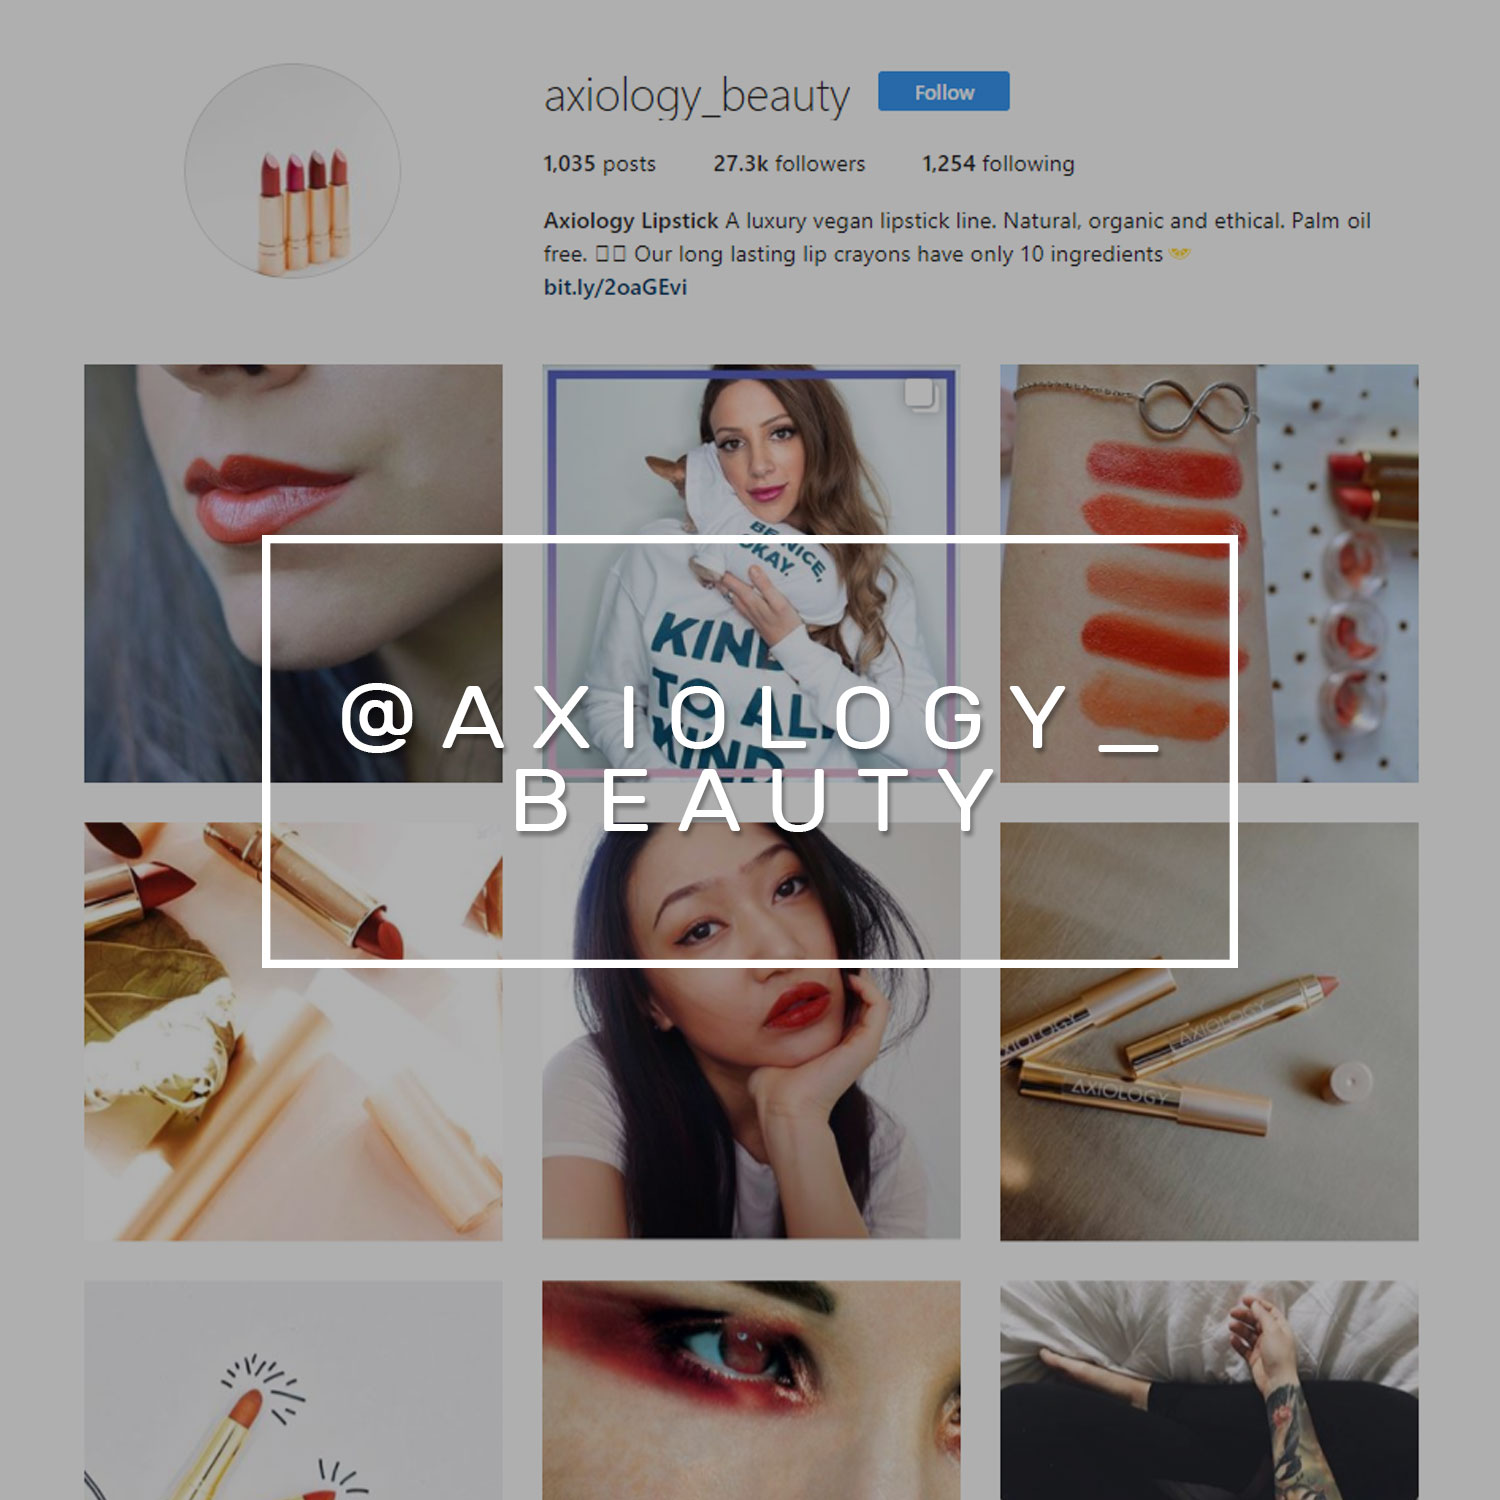 Axiology on Instagram